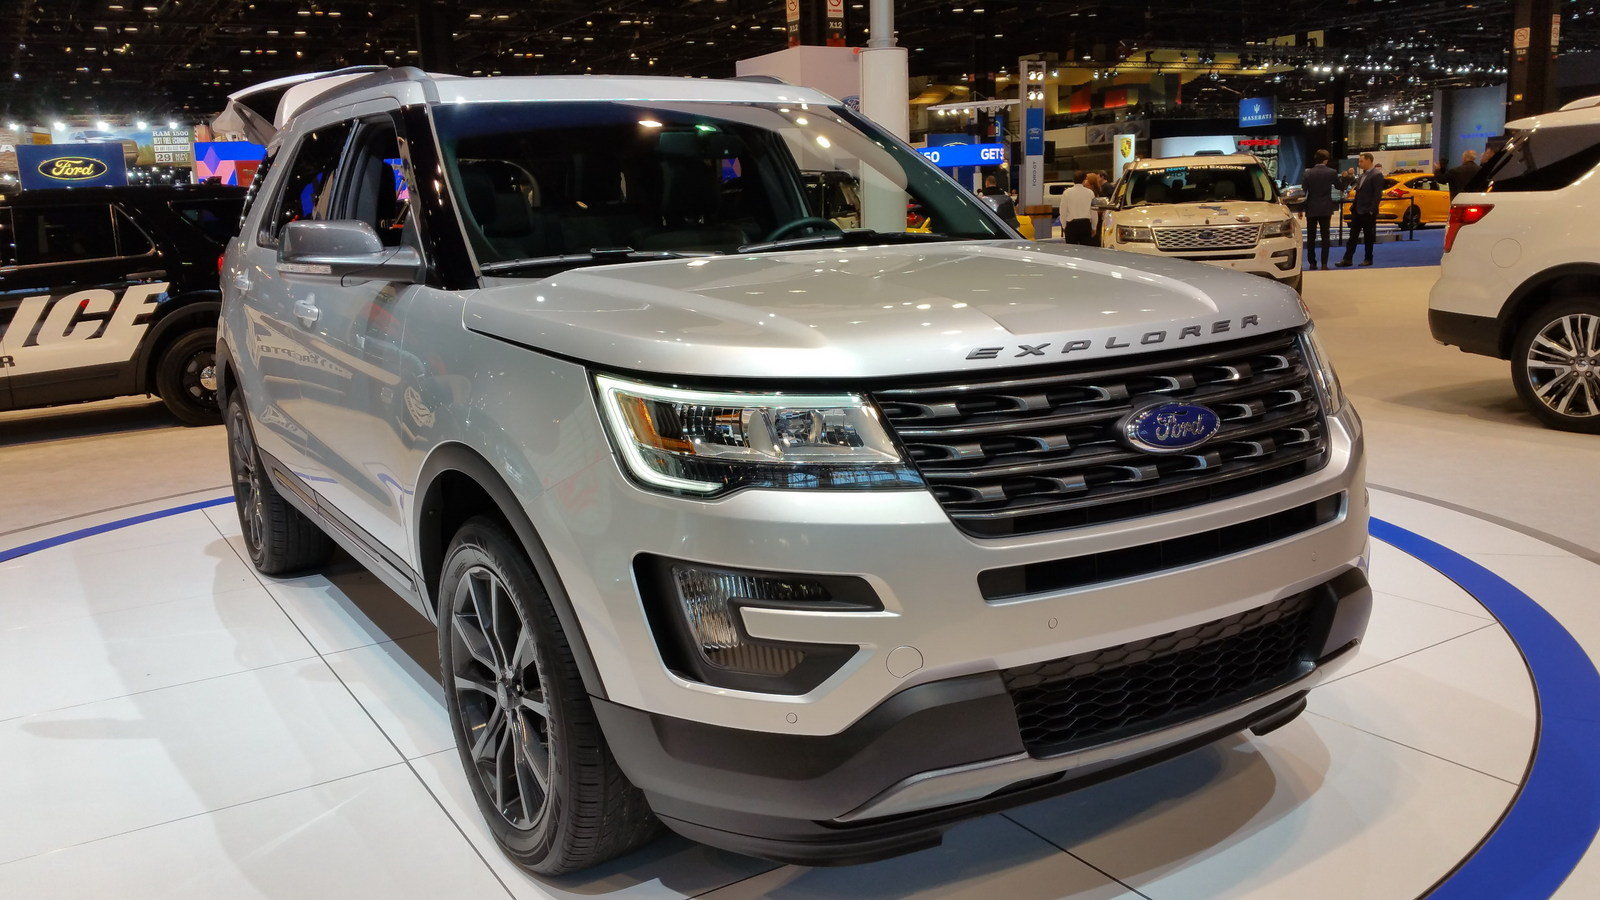 2017 Ford Explorer Xlt Sport Appearance Package Picture 665415 Car Review Top Speed